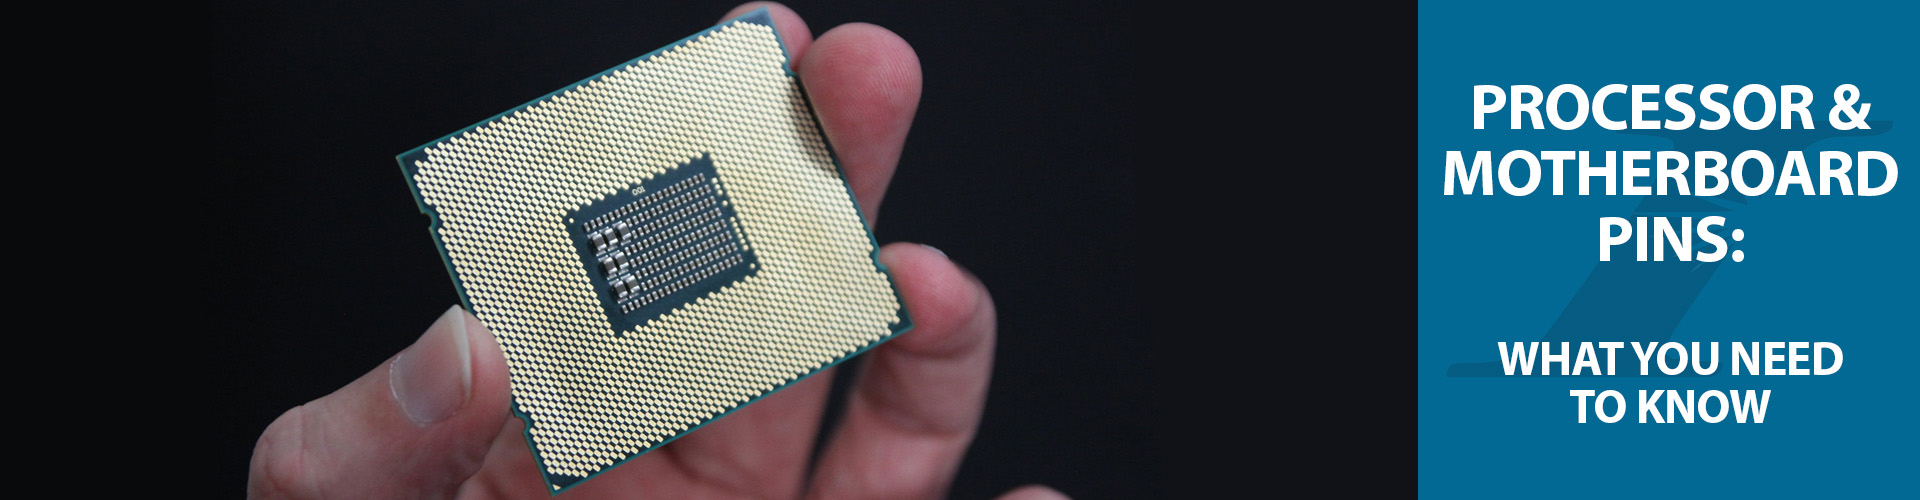 Processor and Motherboard Pins: What You Need to Know